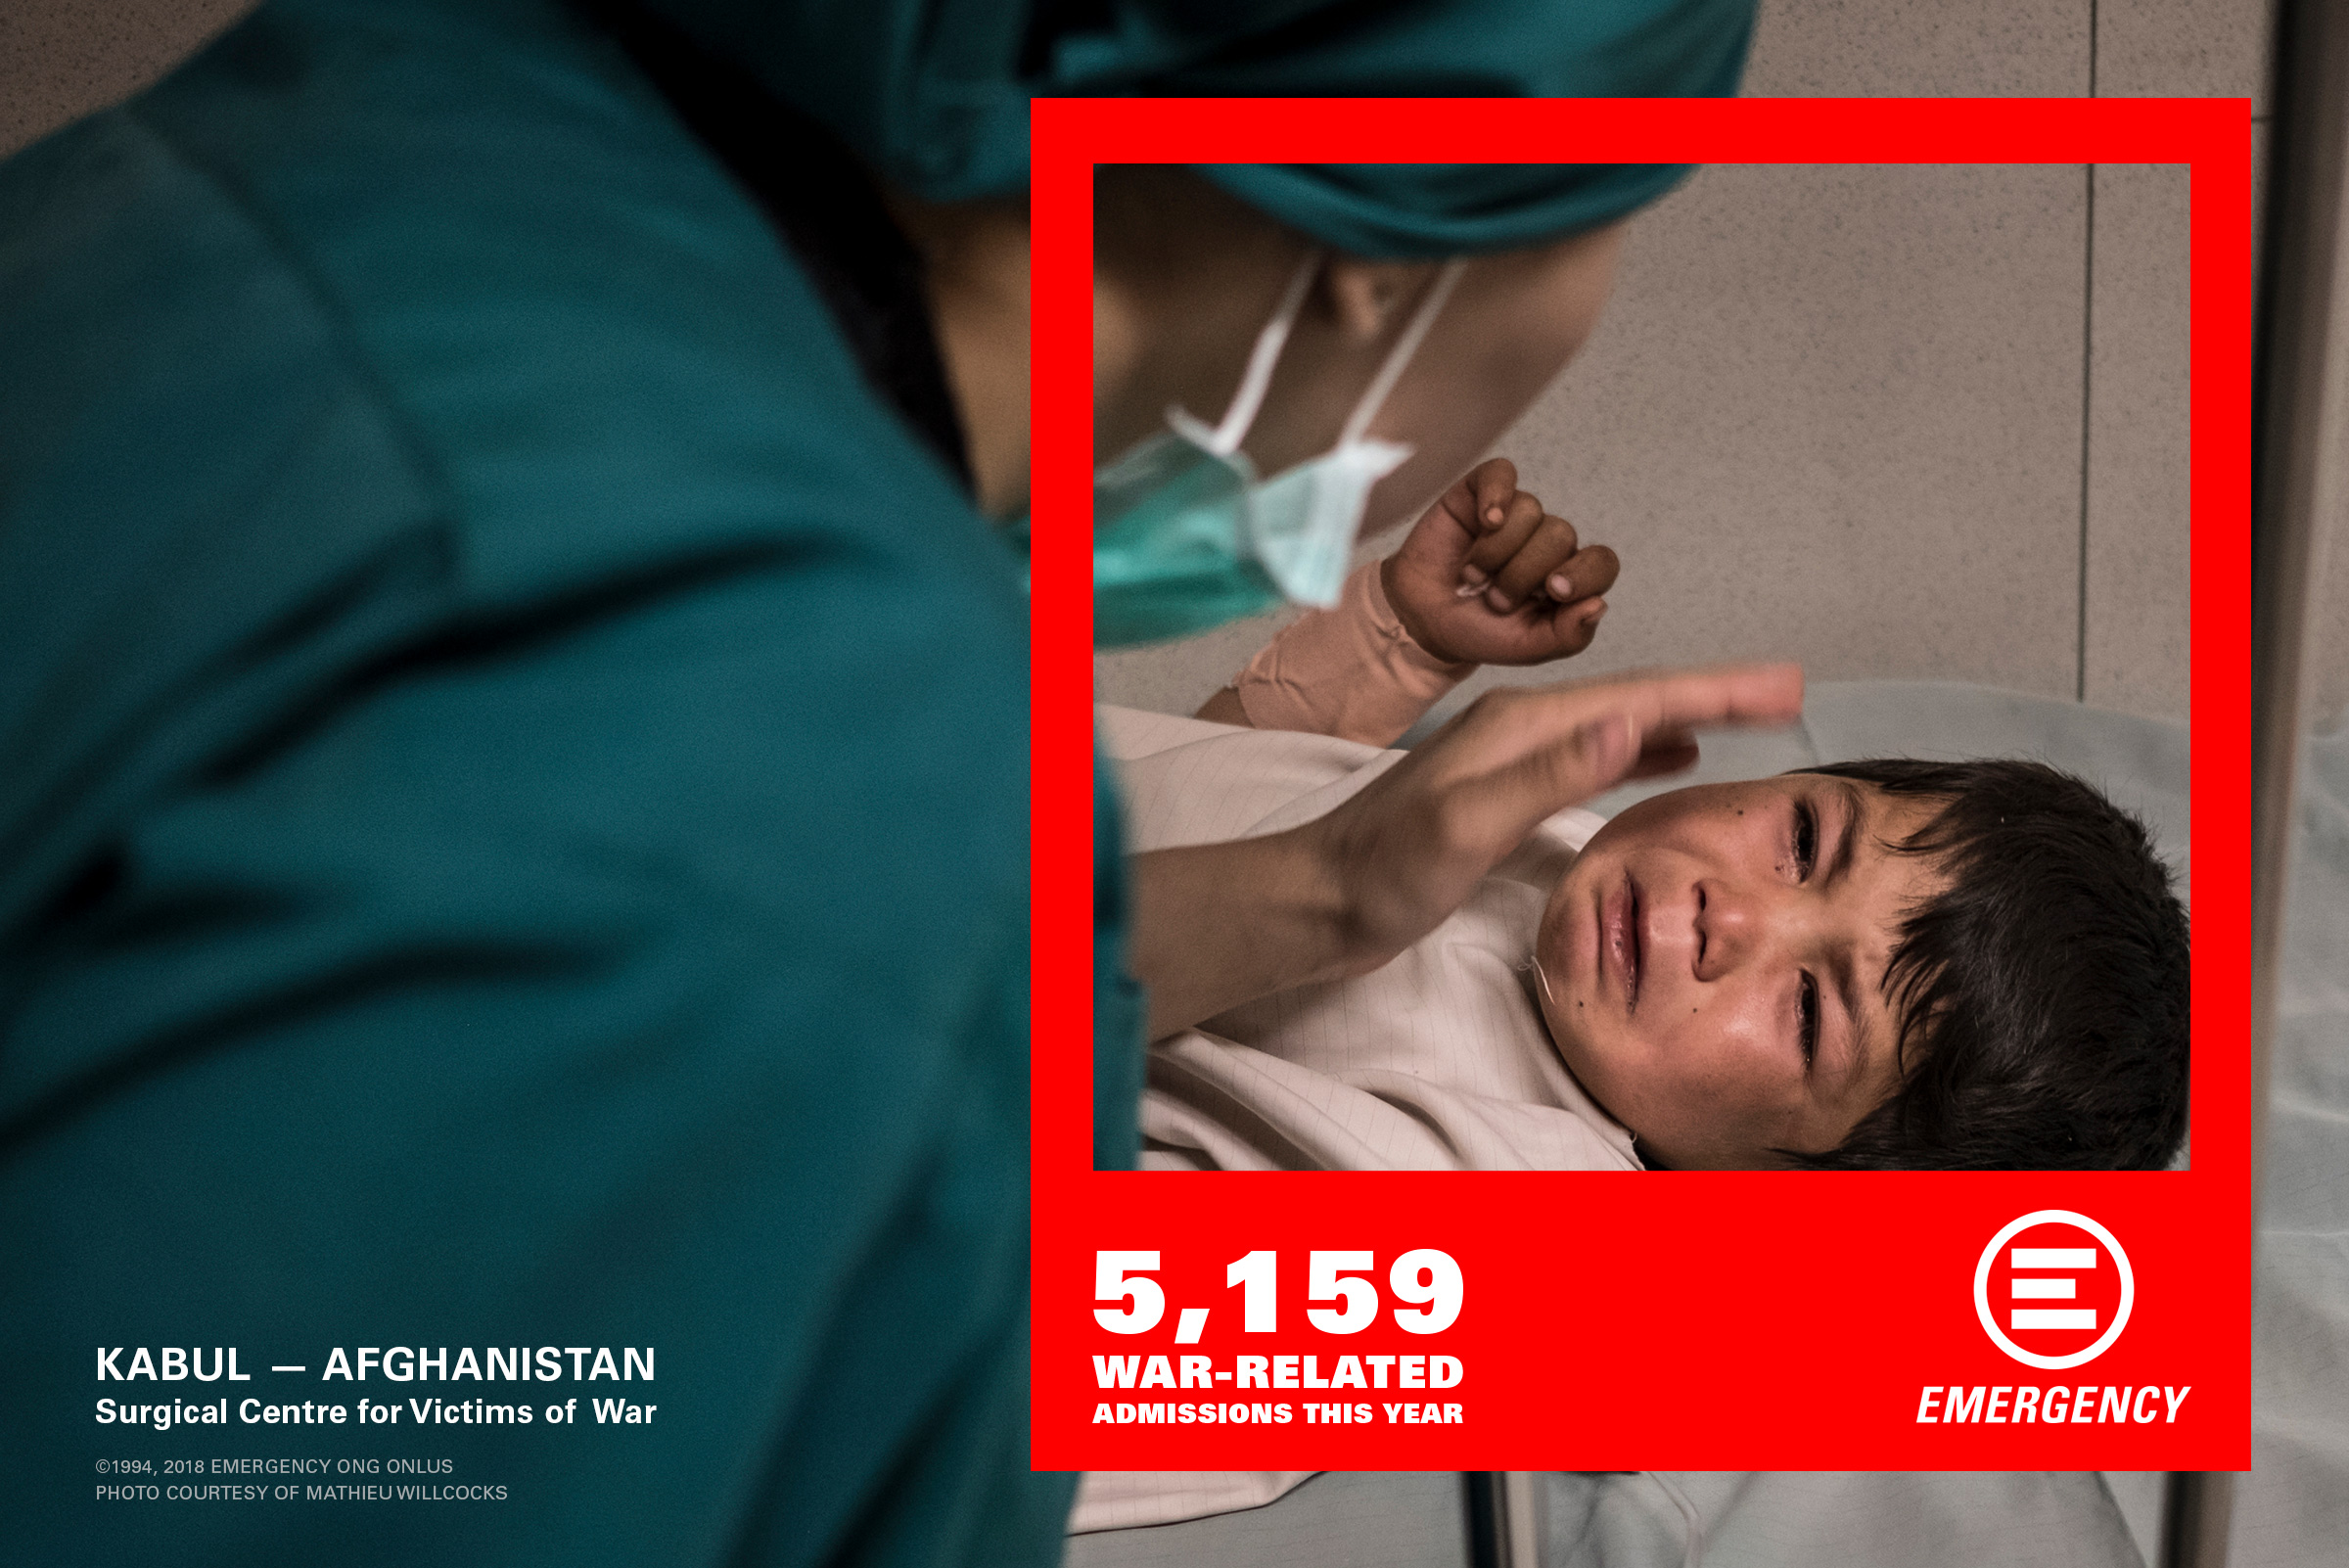 EMERGENCY Has Been Treating Victims Of War In Afghanistan Since 1999